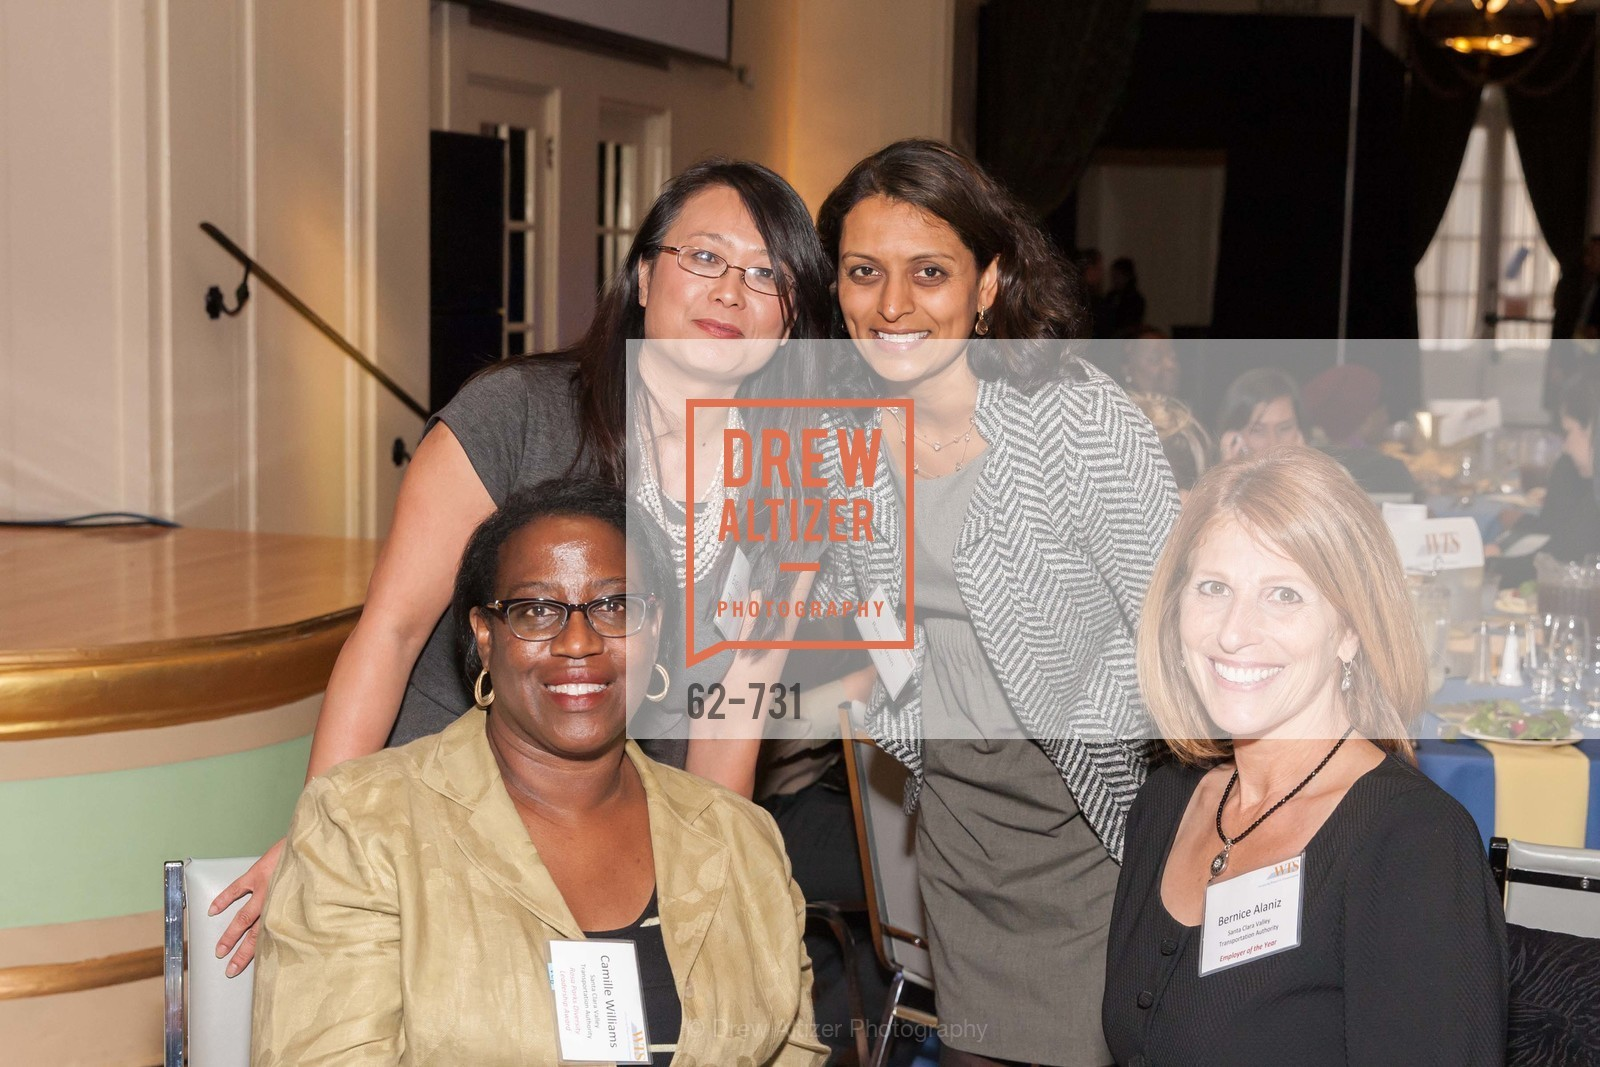 Camille Williams, Evelyn Tran, Ratna Amin, Bernice Alaniz, WOMEN'S TRANSPORTATION SEMINAR SF Bay Area Chapter Annual Scholarship Awards, US, May 15th, 2015,Drew Altizer, Drew Altizer Photography, full-service agency, private events, San Francisco photographer, photographer california